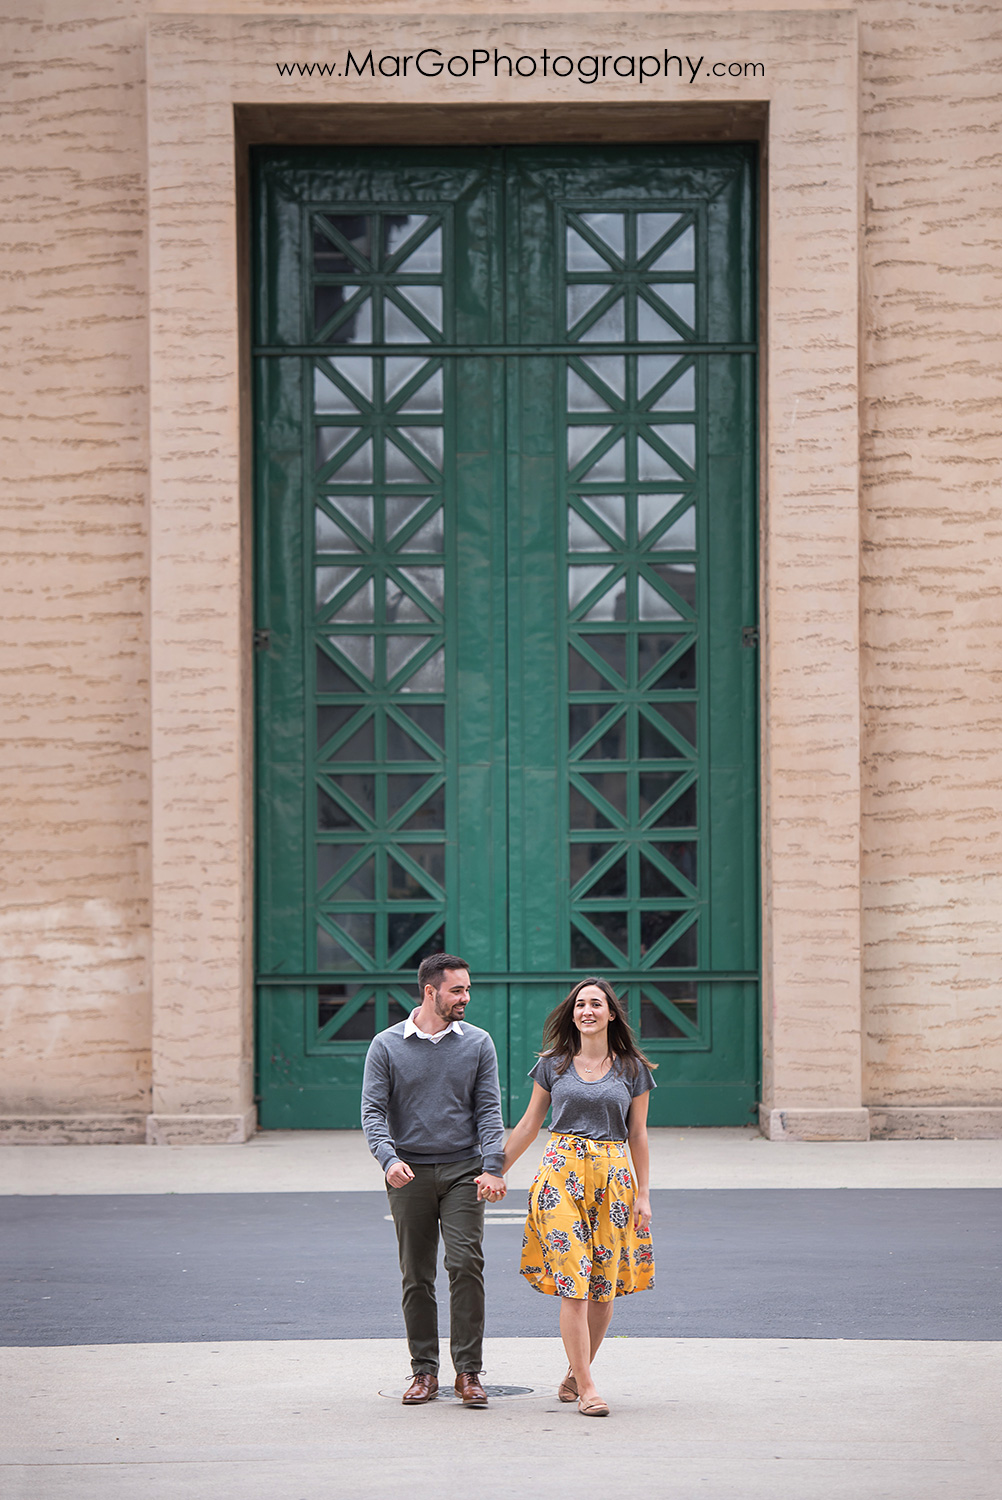 engagement session at Palace of Fine Arts in San Francisco - couple walking in front of green door